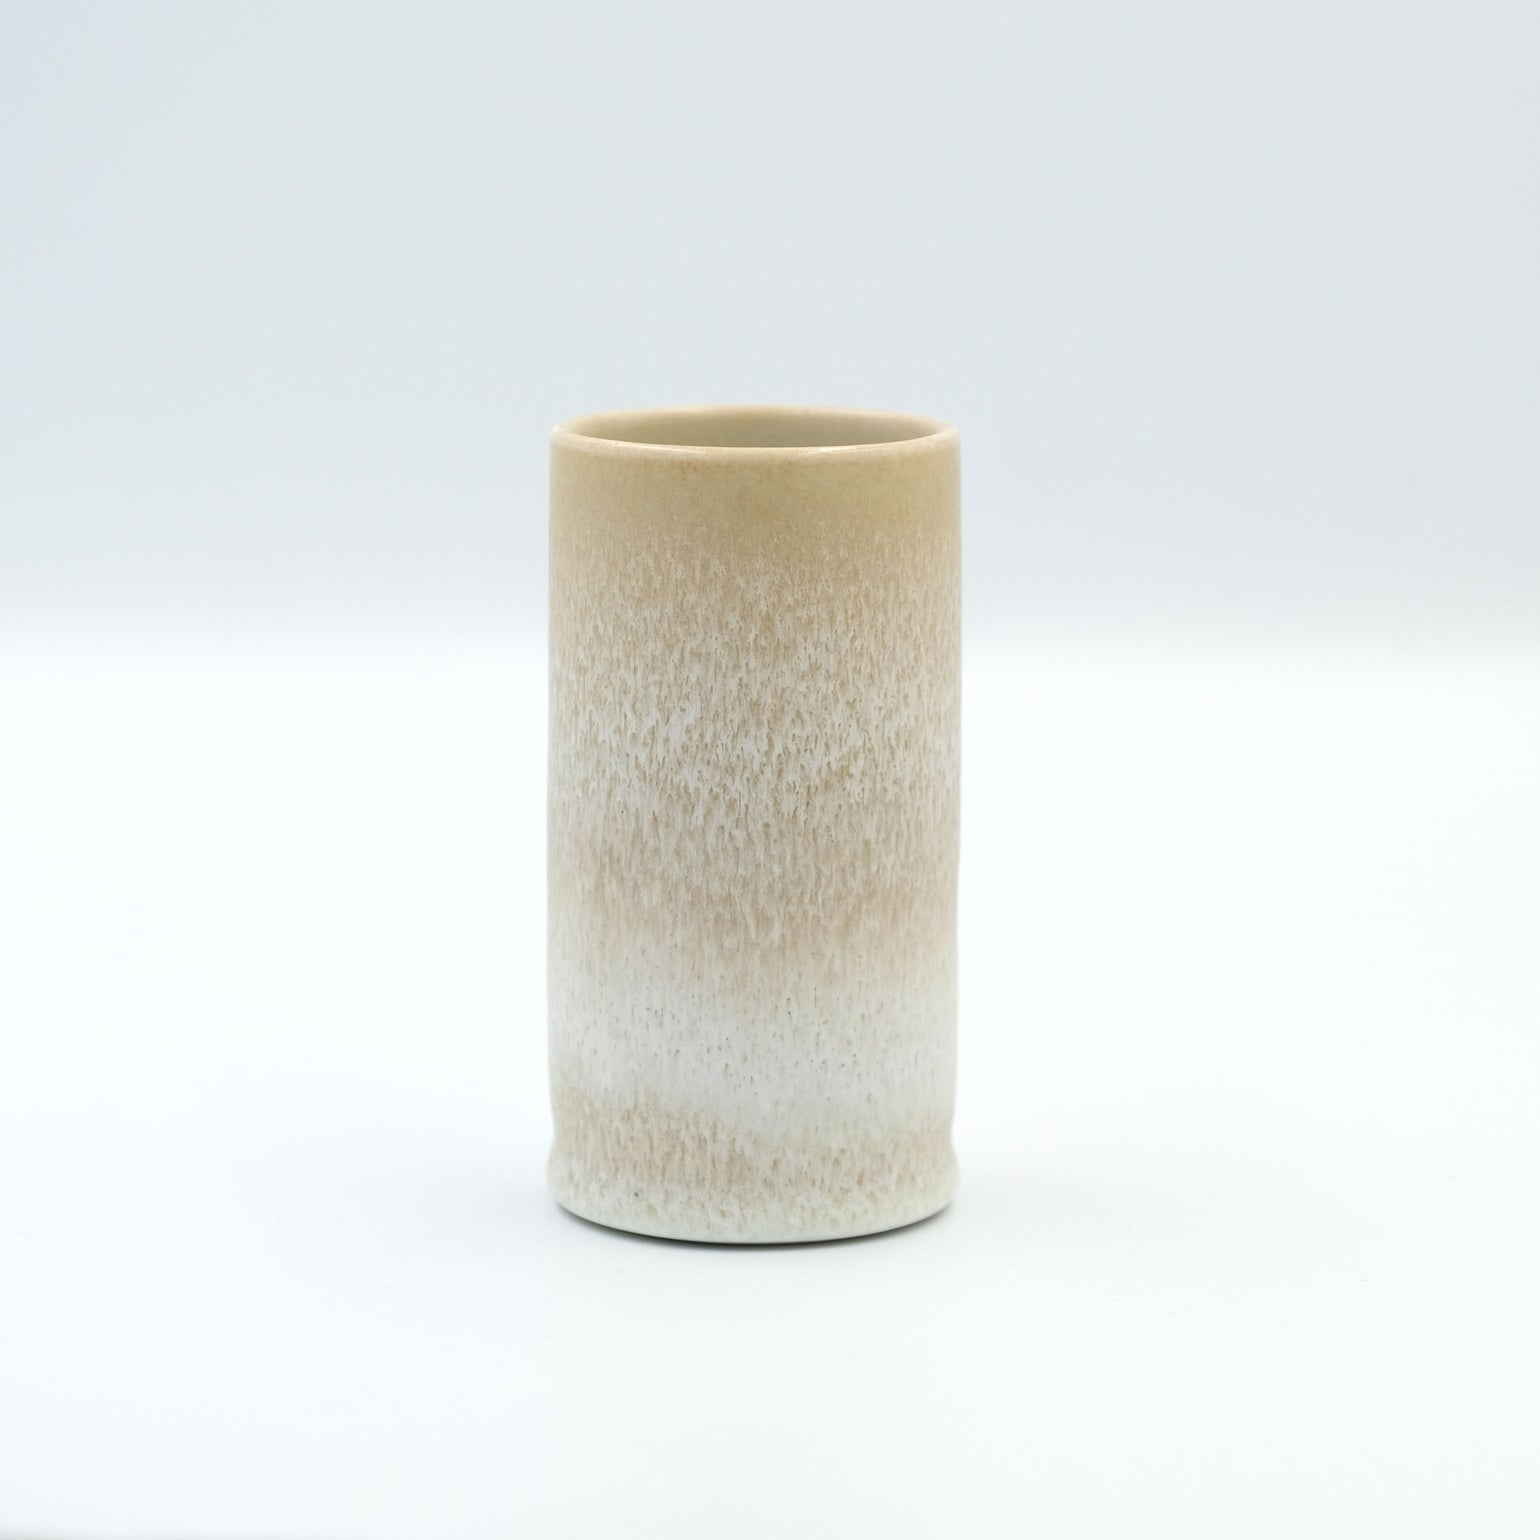 Image of MINI CYLINDER IN EARTH WHITE GLAZE